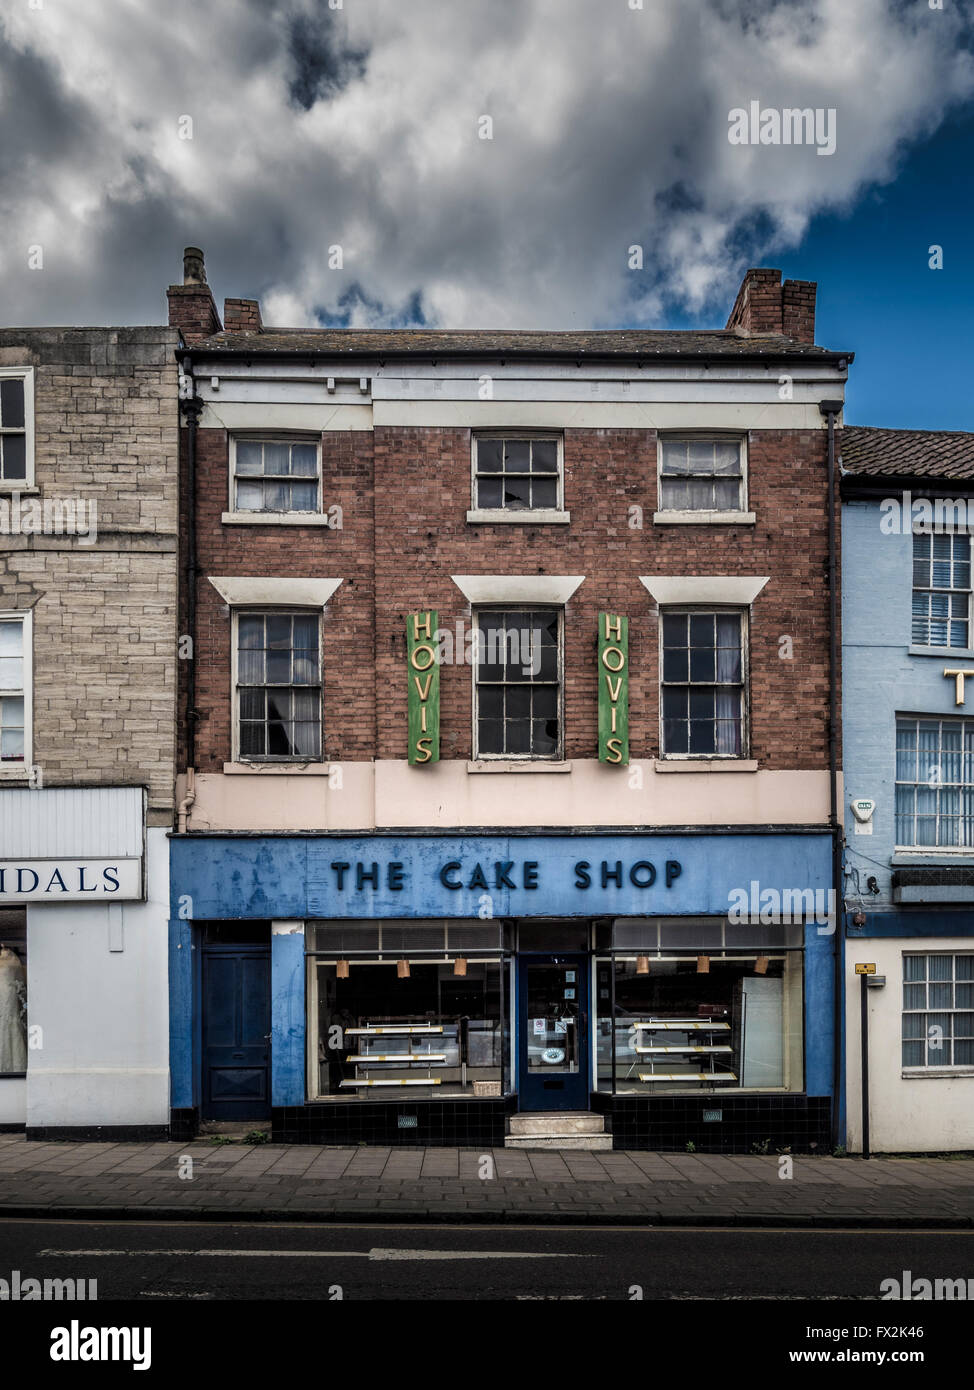 The Cake Shop with traditional Hovis signs, Watergate, Grantham, Lincolnshire, UK. - Stock Image